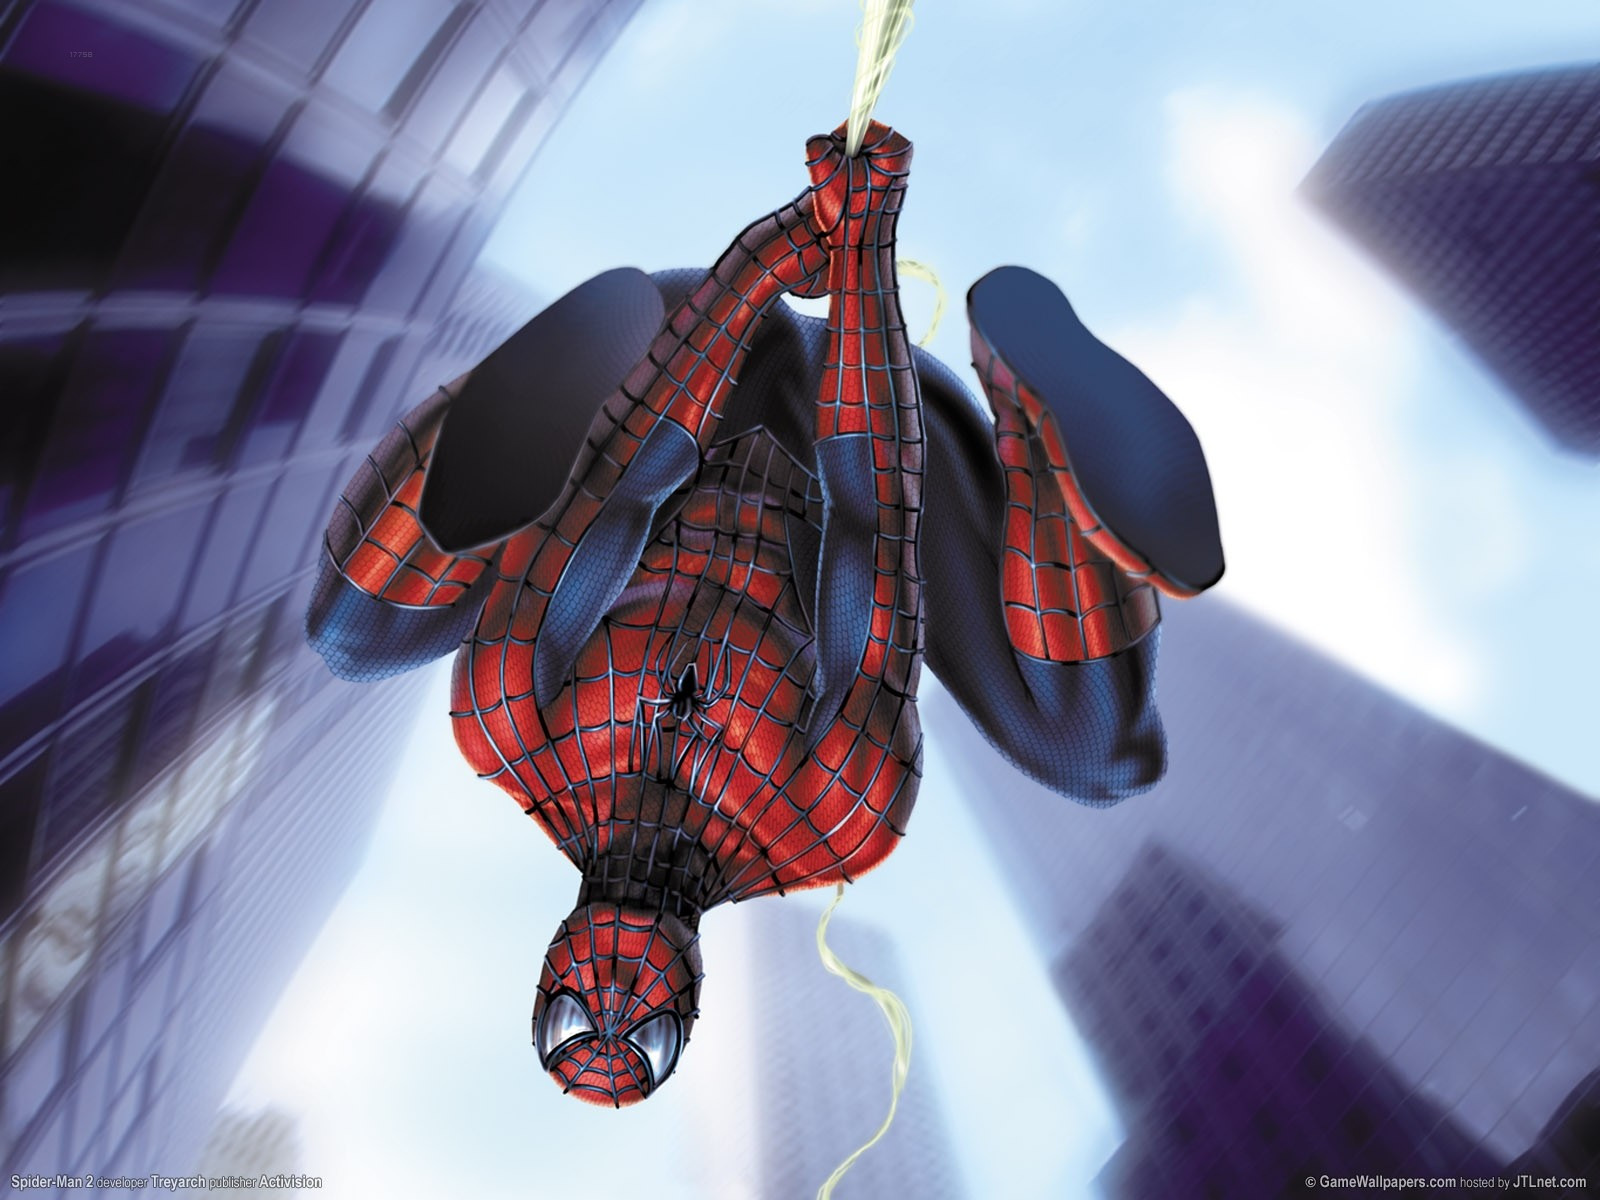 spiderman game wallpaper fanart hd poster concept zeromin0